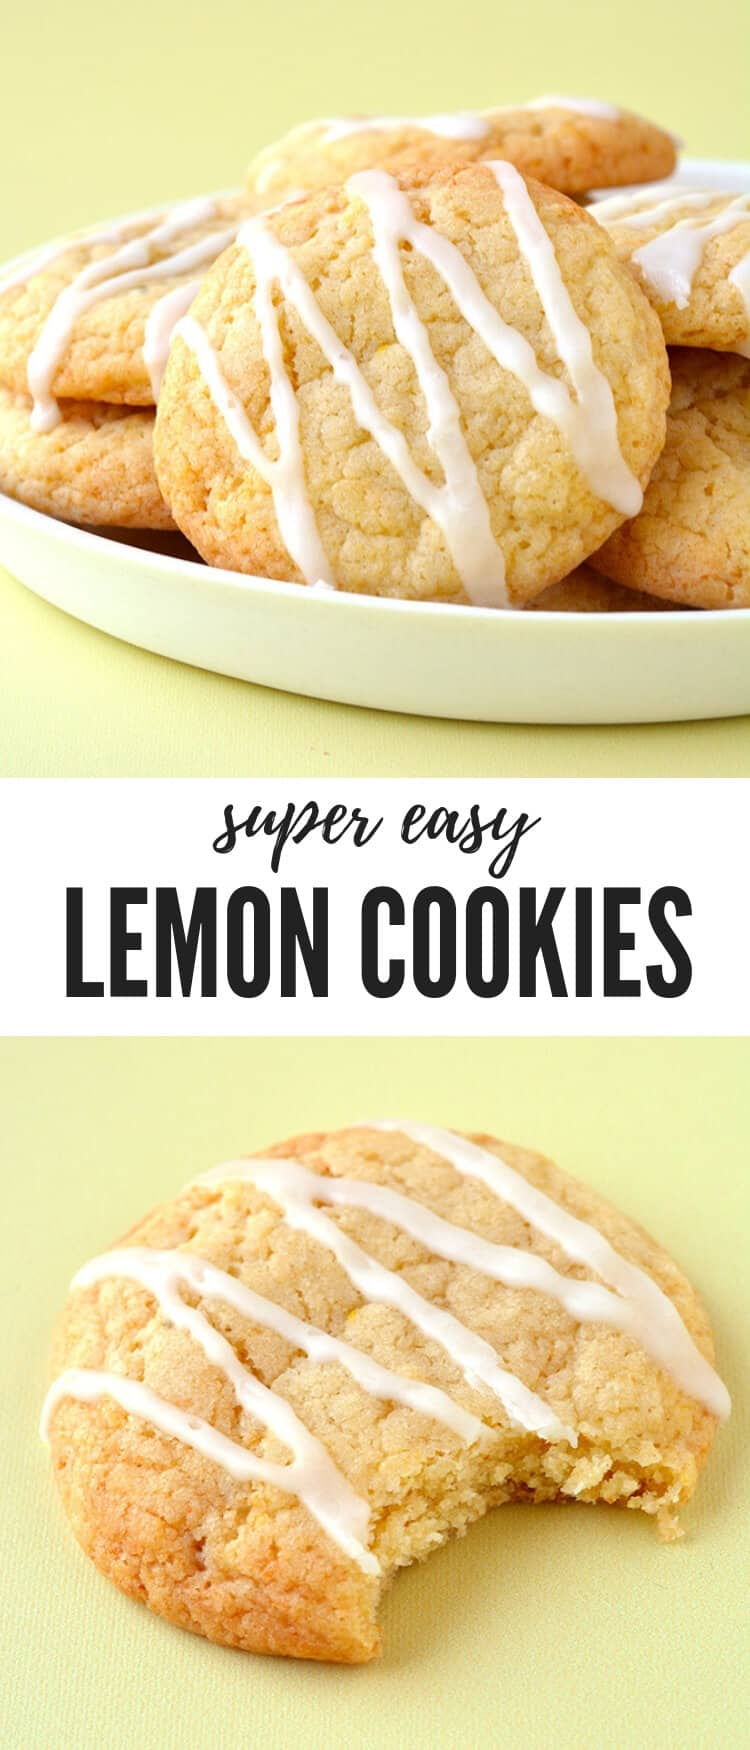 Deliciously chewy Lemon Cookies made using fresh juice and zest from real lemons. Drizzled with a two ingredient lemon glaze, these Lemon Cookies are the perfect afternoon treat. Recipe from sweetestmenu.com #lemon #cookies #baking #dessert